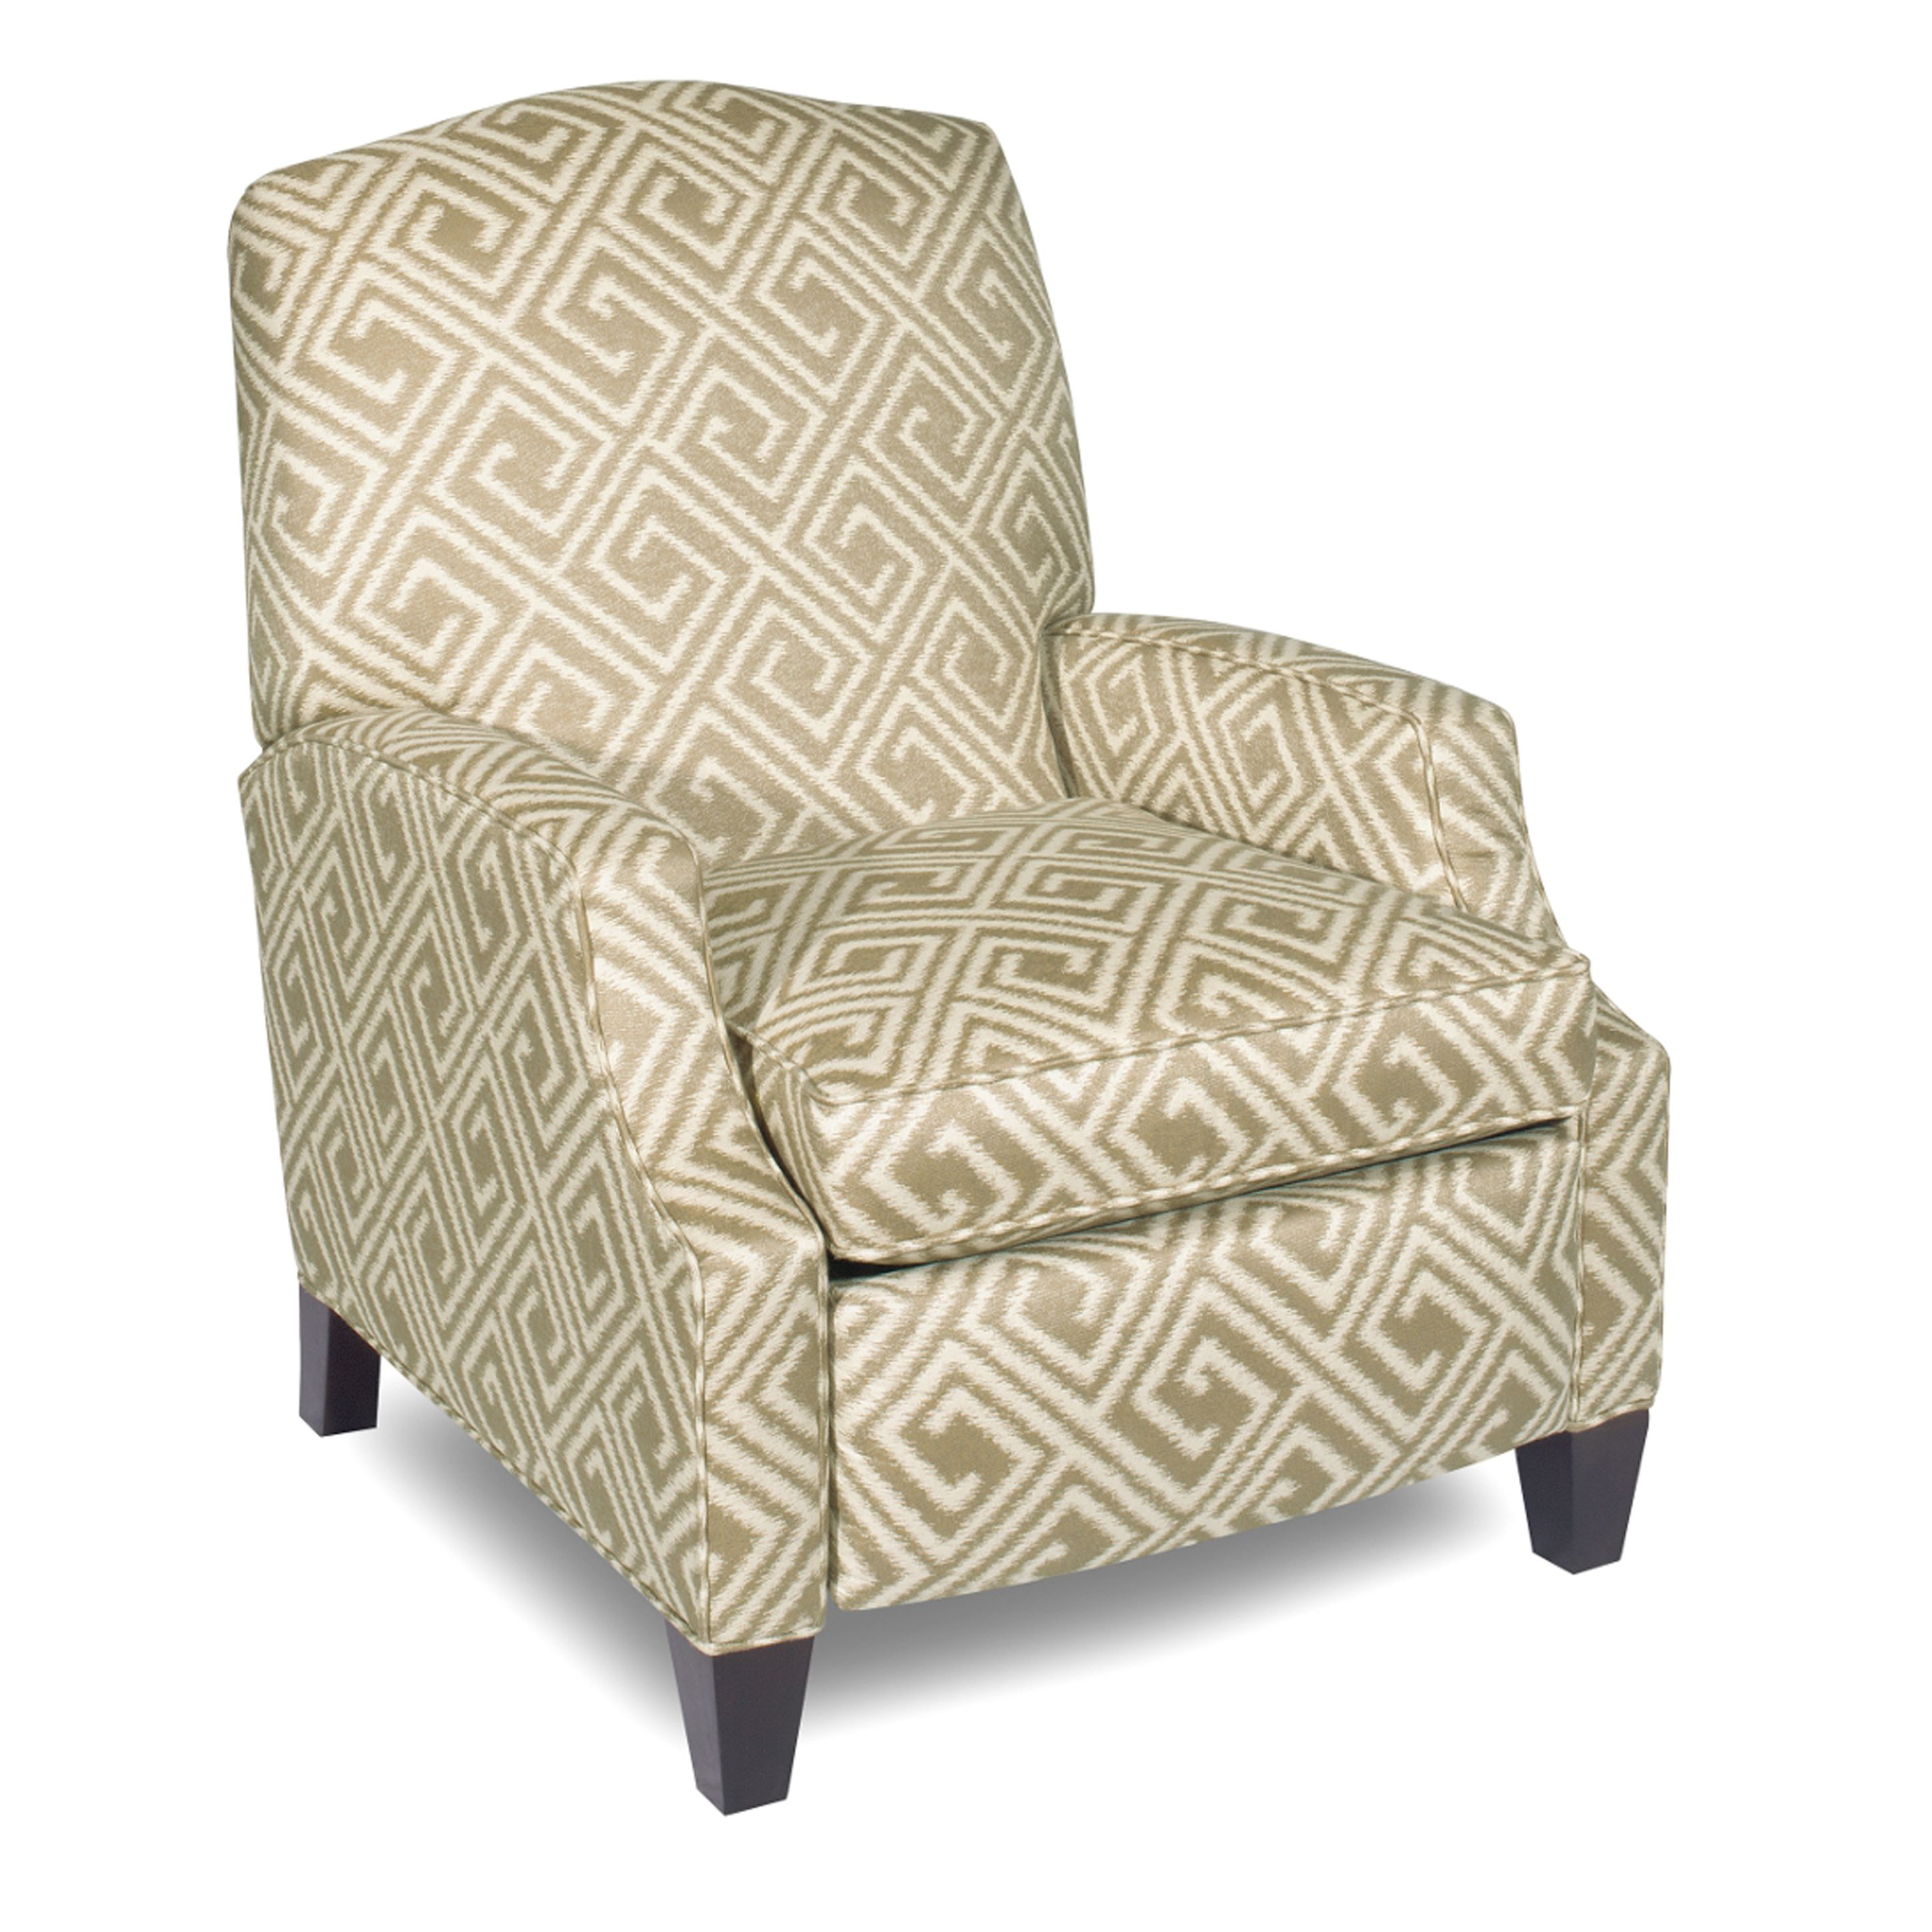 16 best CHAIRS- recliners swivels and club chairs images on Pinterest | Club chairs Recliners and Accent chairs  sc 1 st  Pinterest & 16 best CHAIRS- recliners swivels and club chairs images on ... islam-shia.org